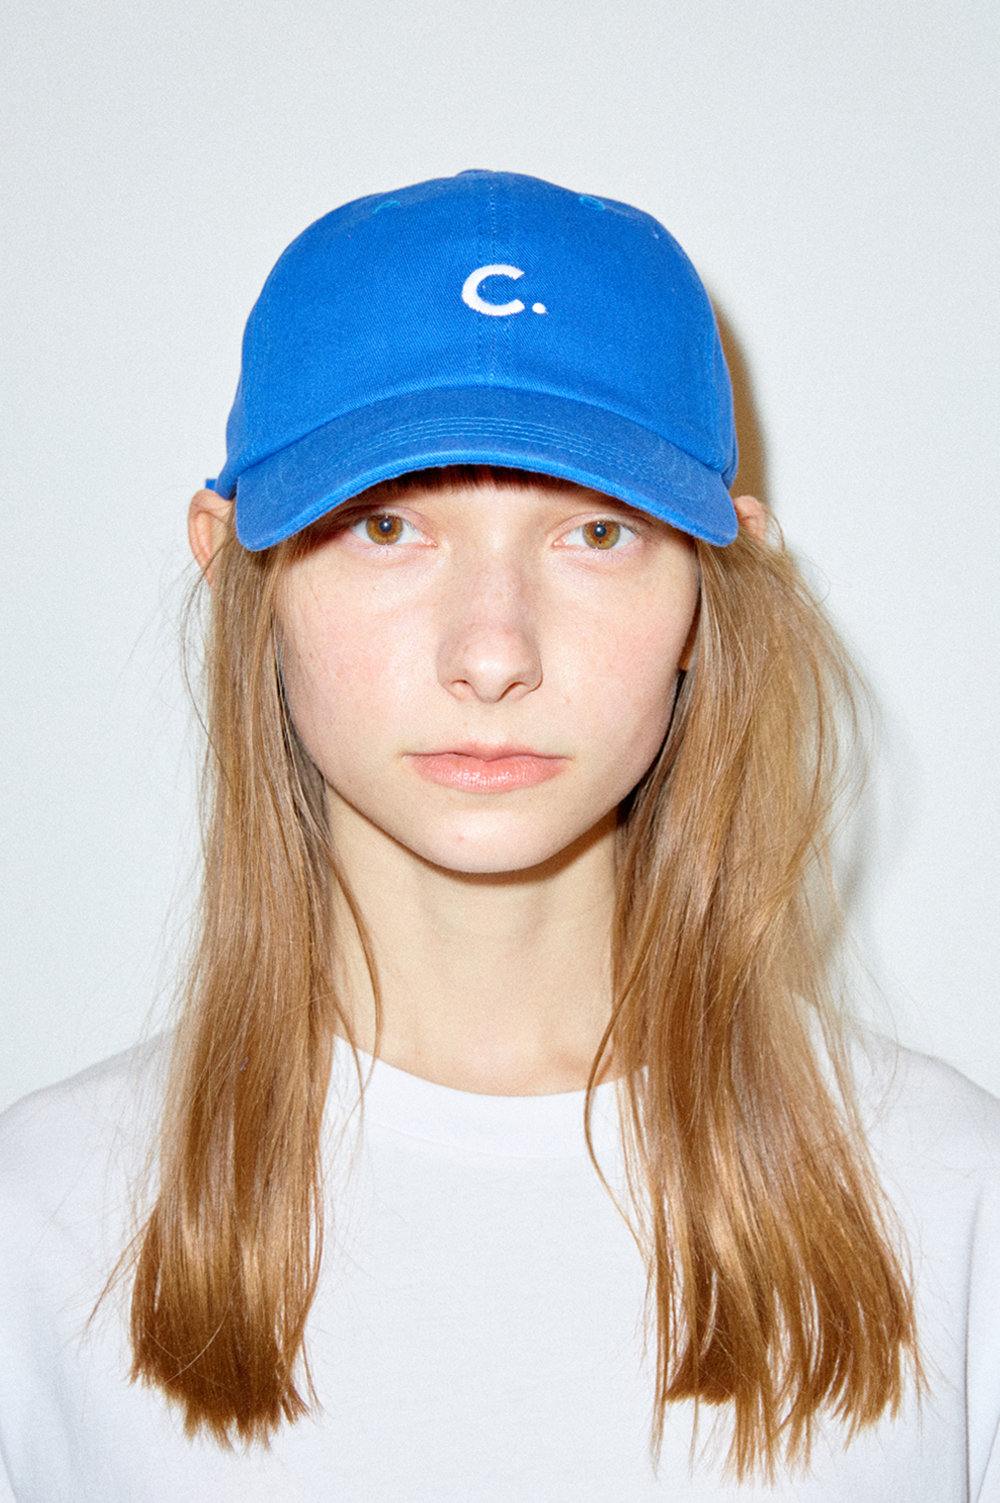 clove - Basic Fit Ball Cap (Paris Blue)